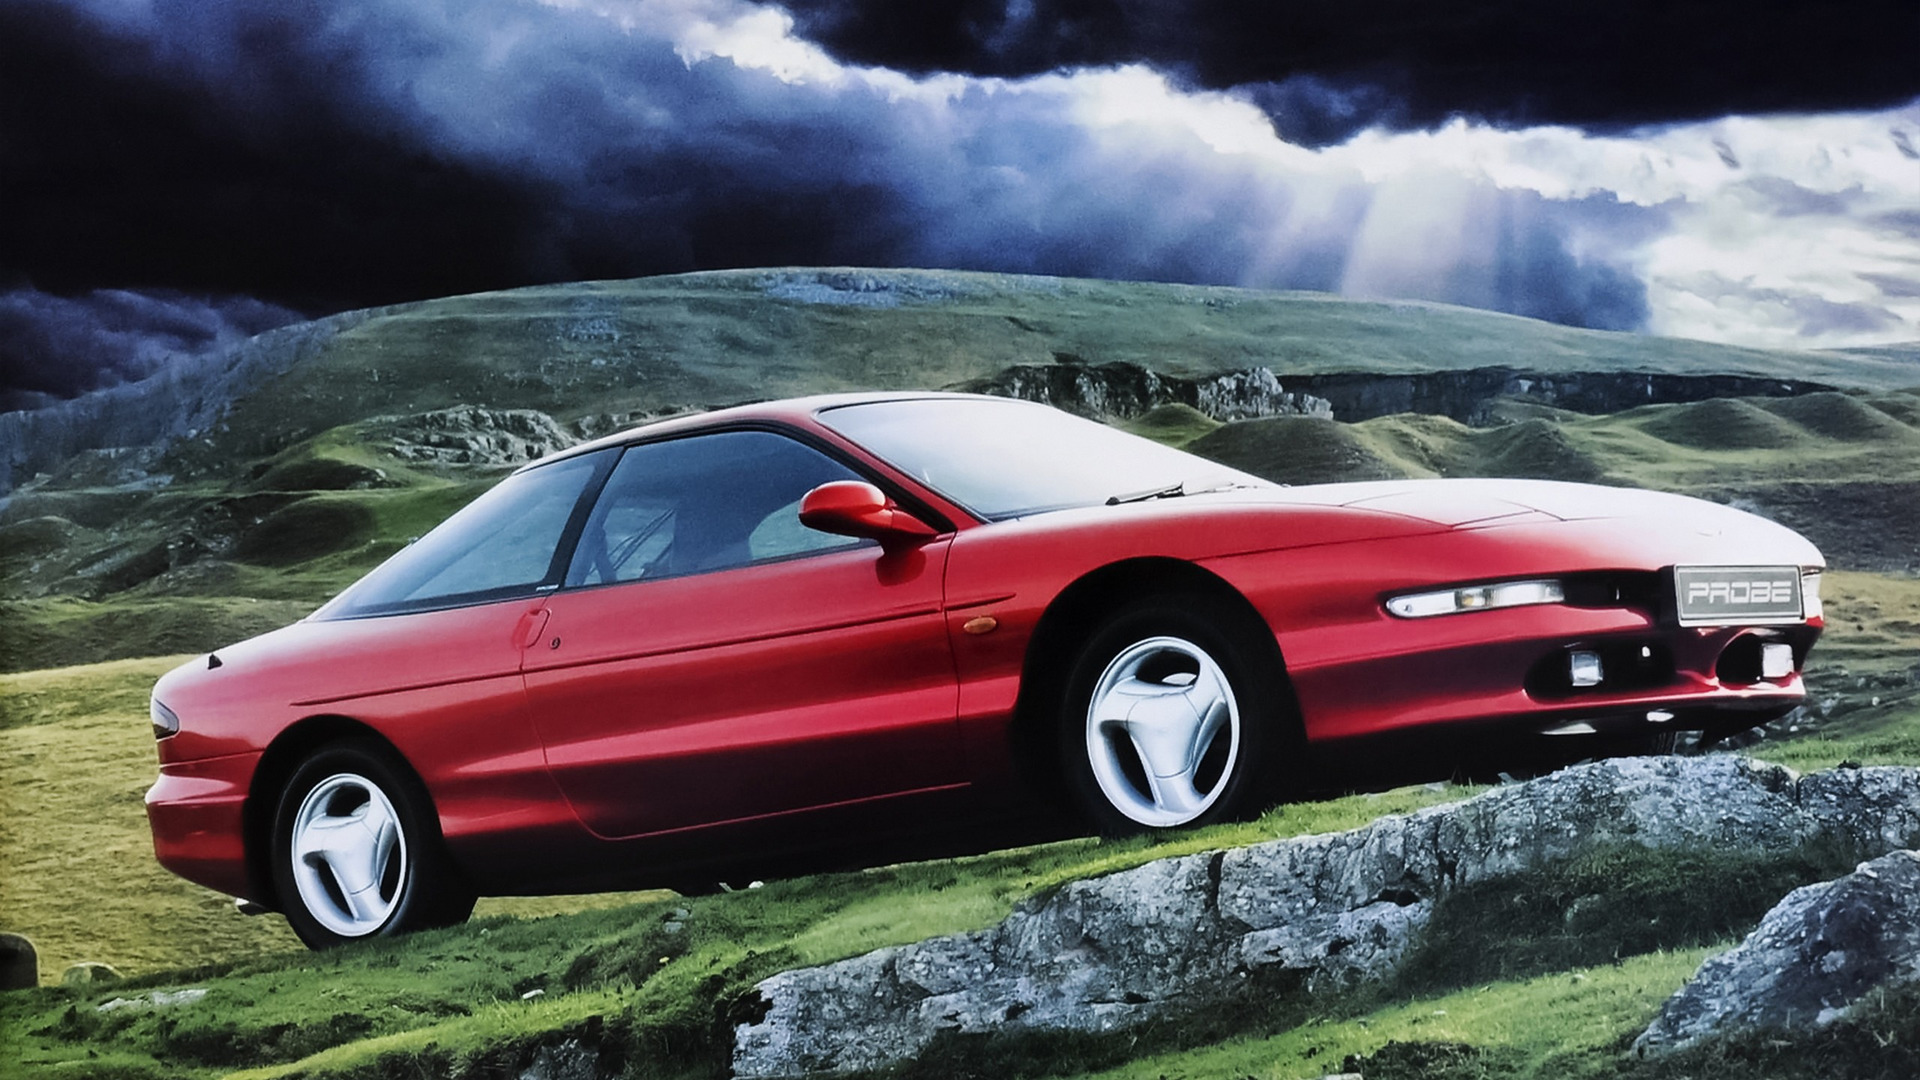 Worst sports cars ford probe